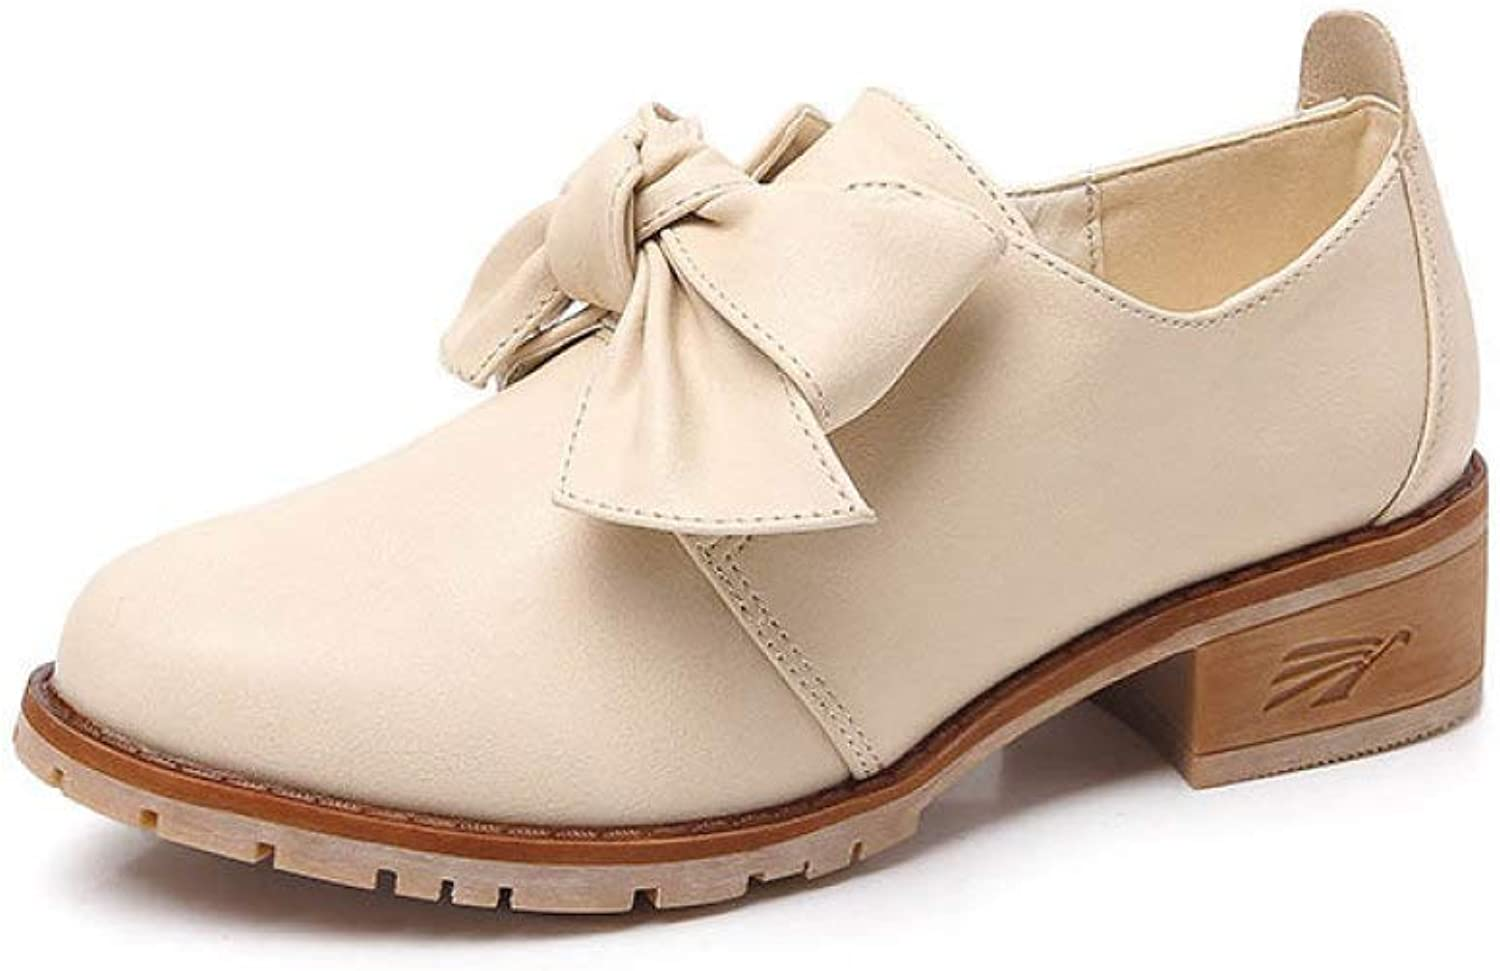 Fay Waters Bowknot Leather Oxfords for Women Round Toe Slip On Chunky Low Heel shoes